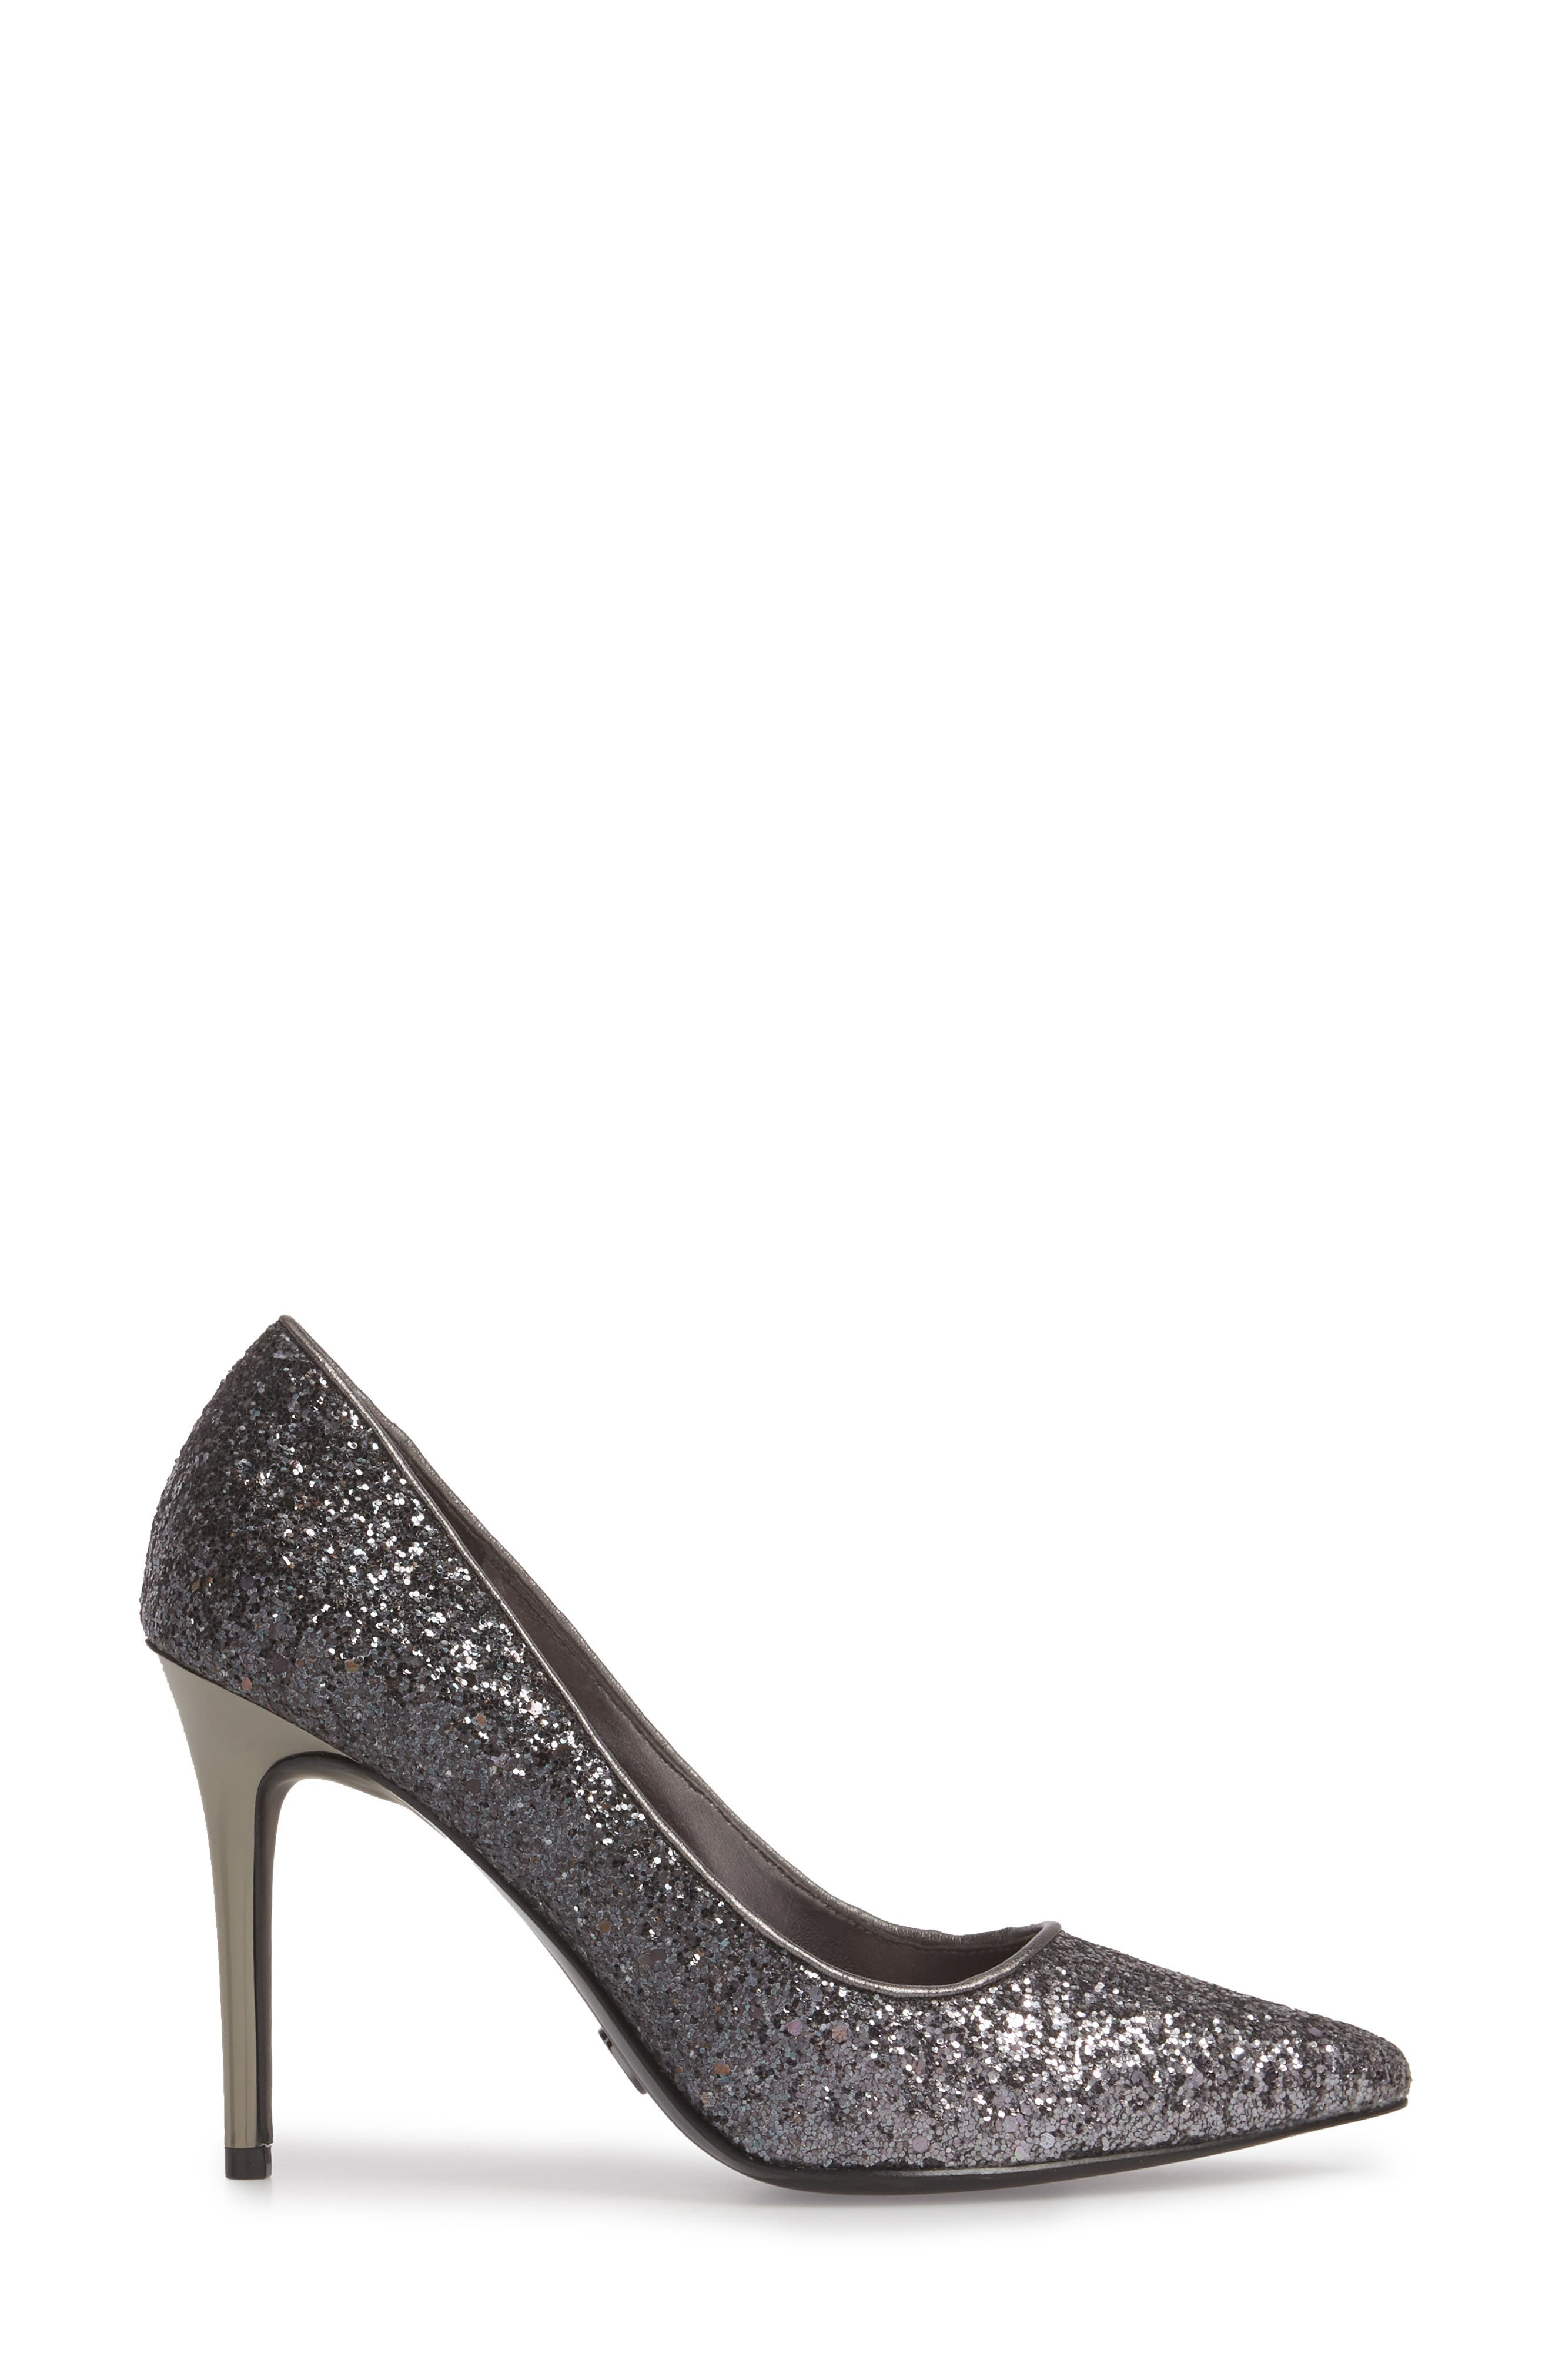 Claire Pointy Toe Pump,                             Alternate thumbnail 3, color,                             GUNMETAL GLITTER FABRIC